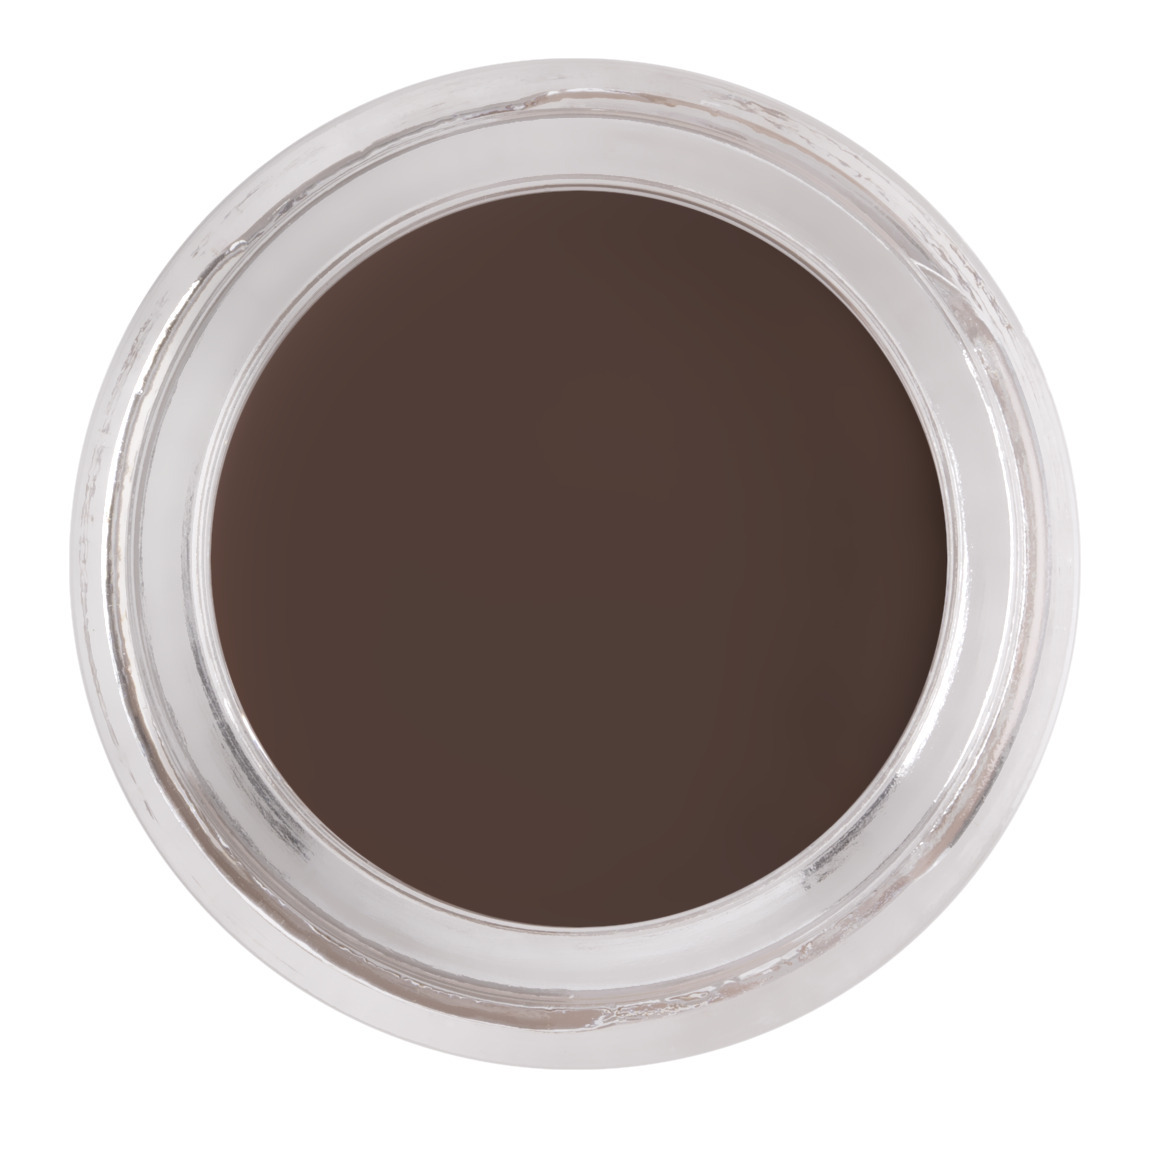 Anastasia Beverly Hills Dipbrow Pomade Chocolate alternative view 1.